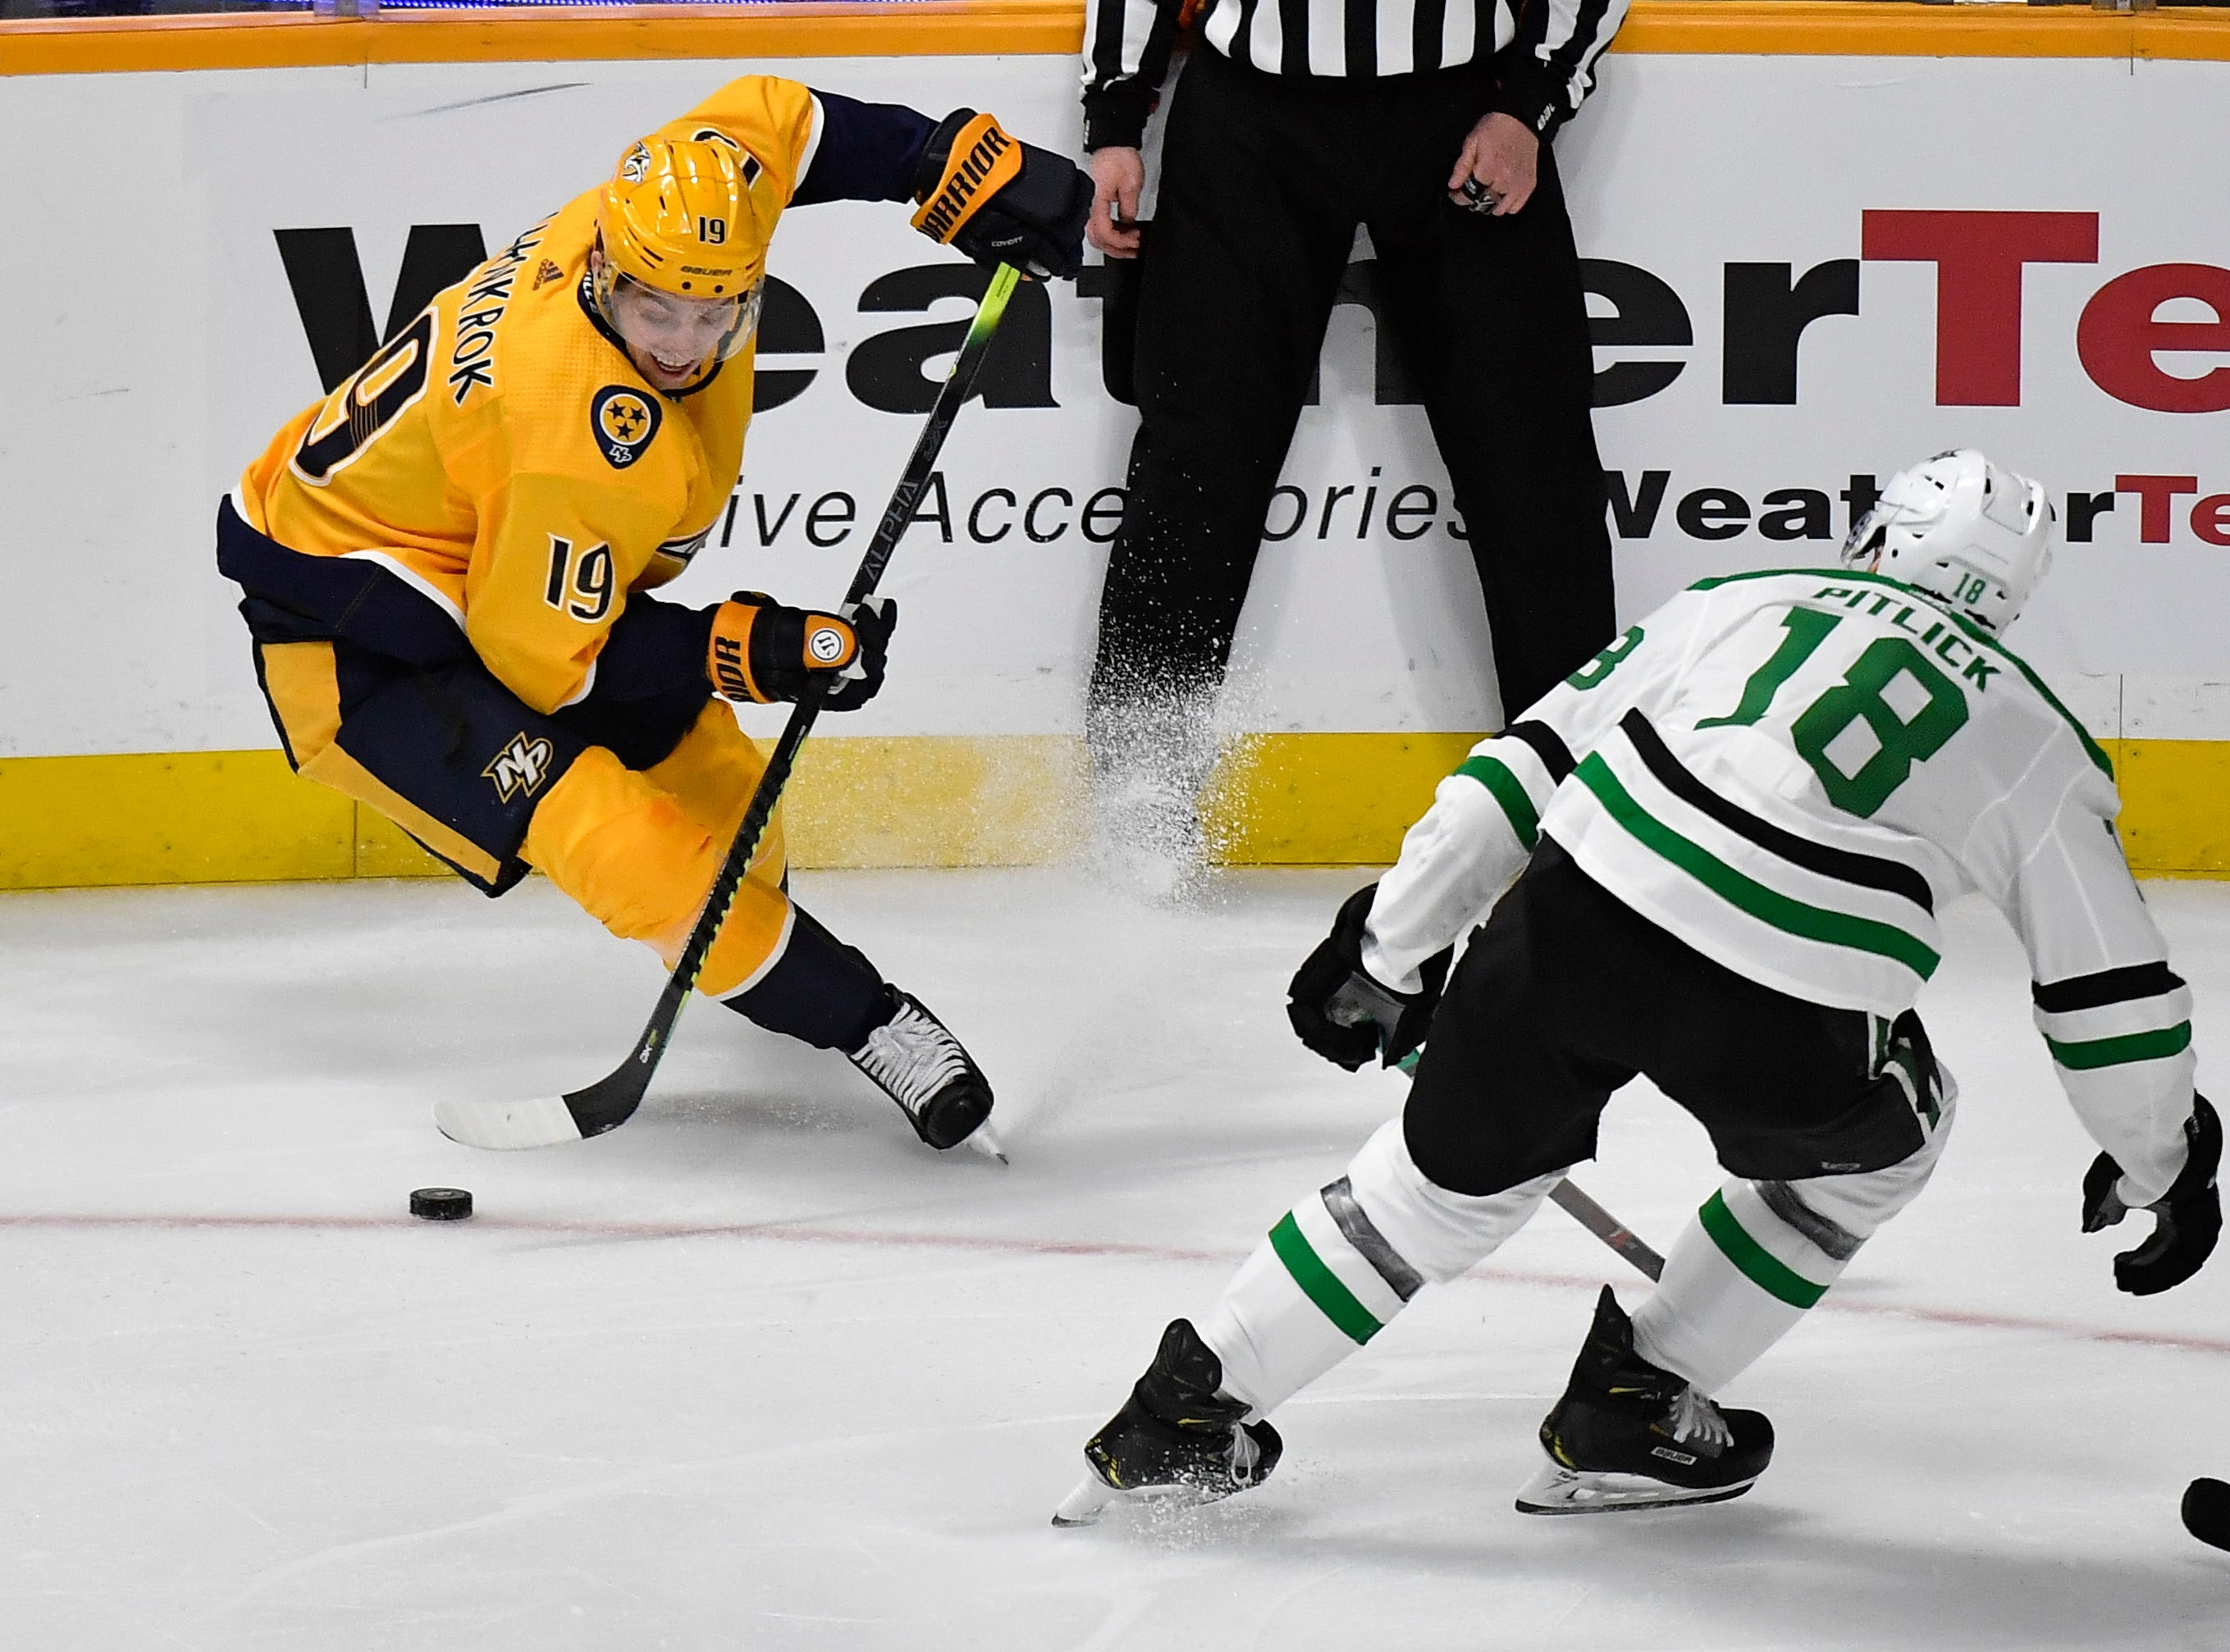 Nashville Predators center Calle Jarnkrok (19) moves the puck defended by Dallas Stars center Tyler Pitlick (18) during the first period of the divisional semifinal game at Bridgestone Arena in Nashville, Tenn., Wednesday, April 10, 2019.